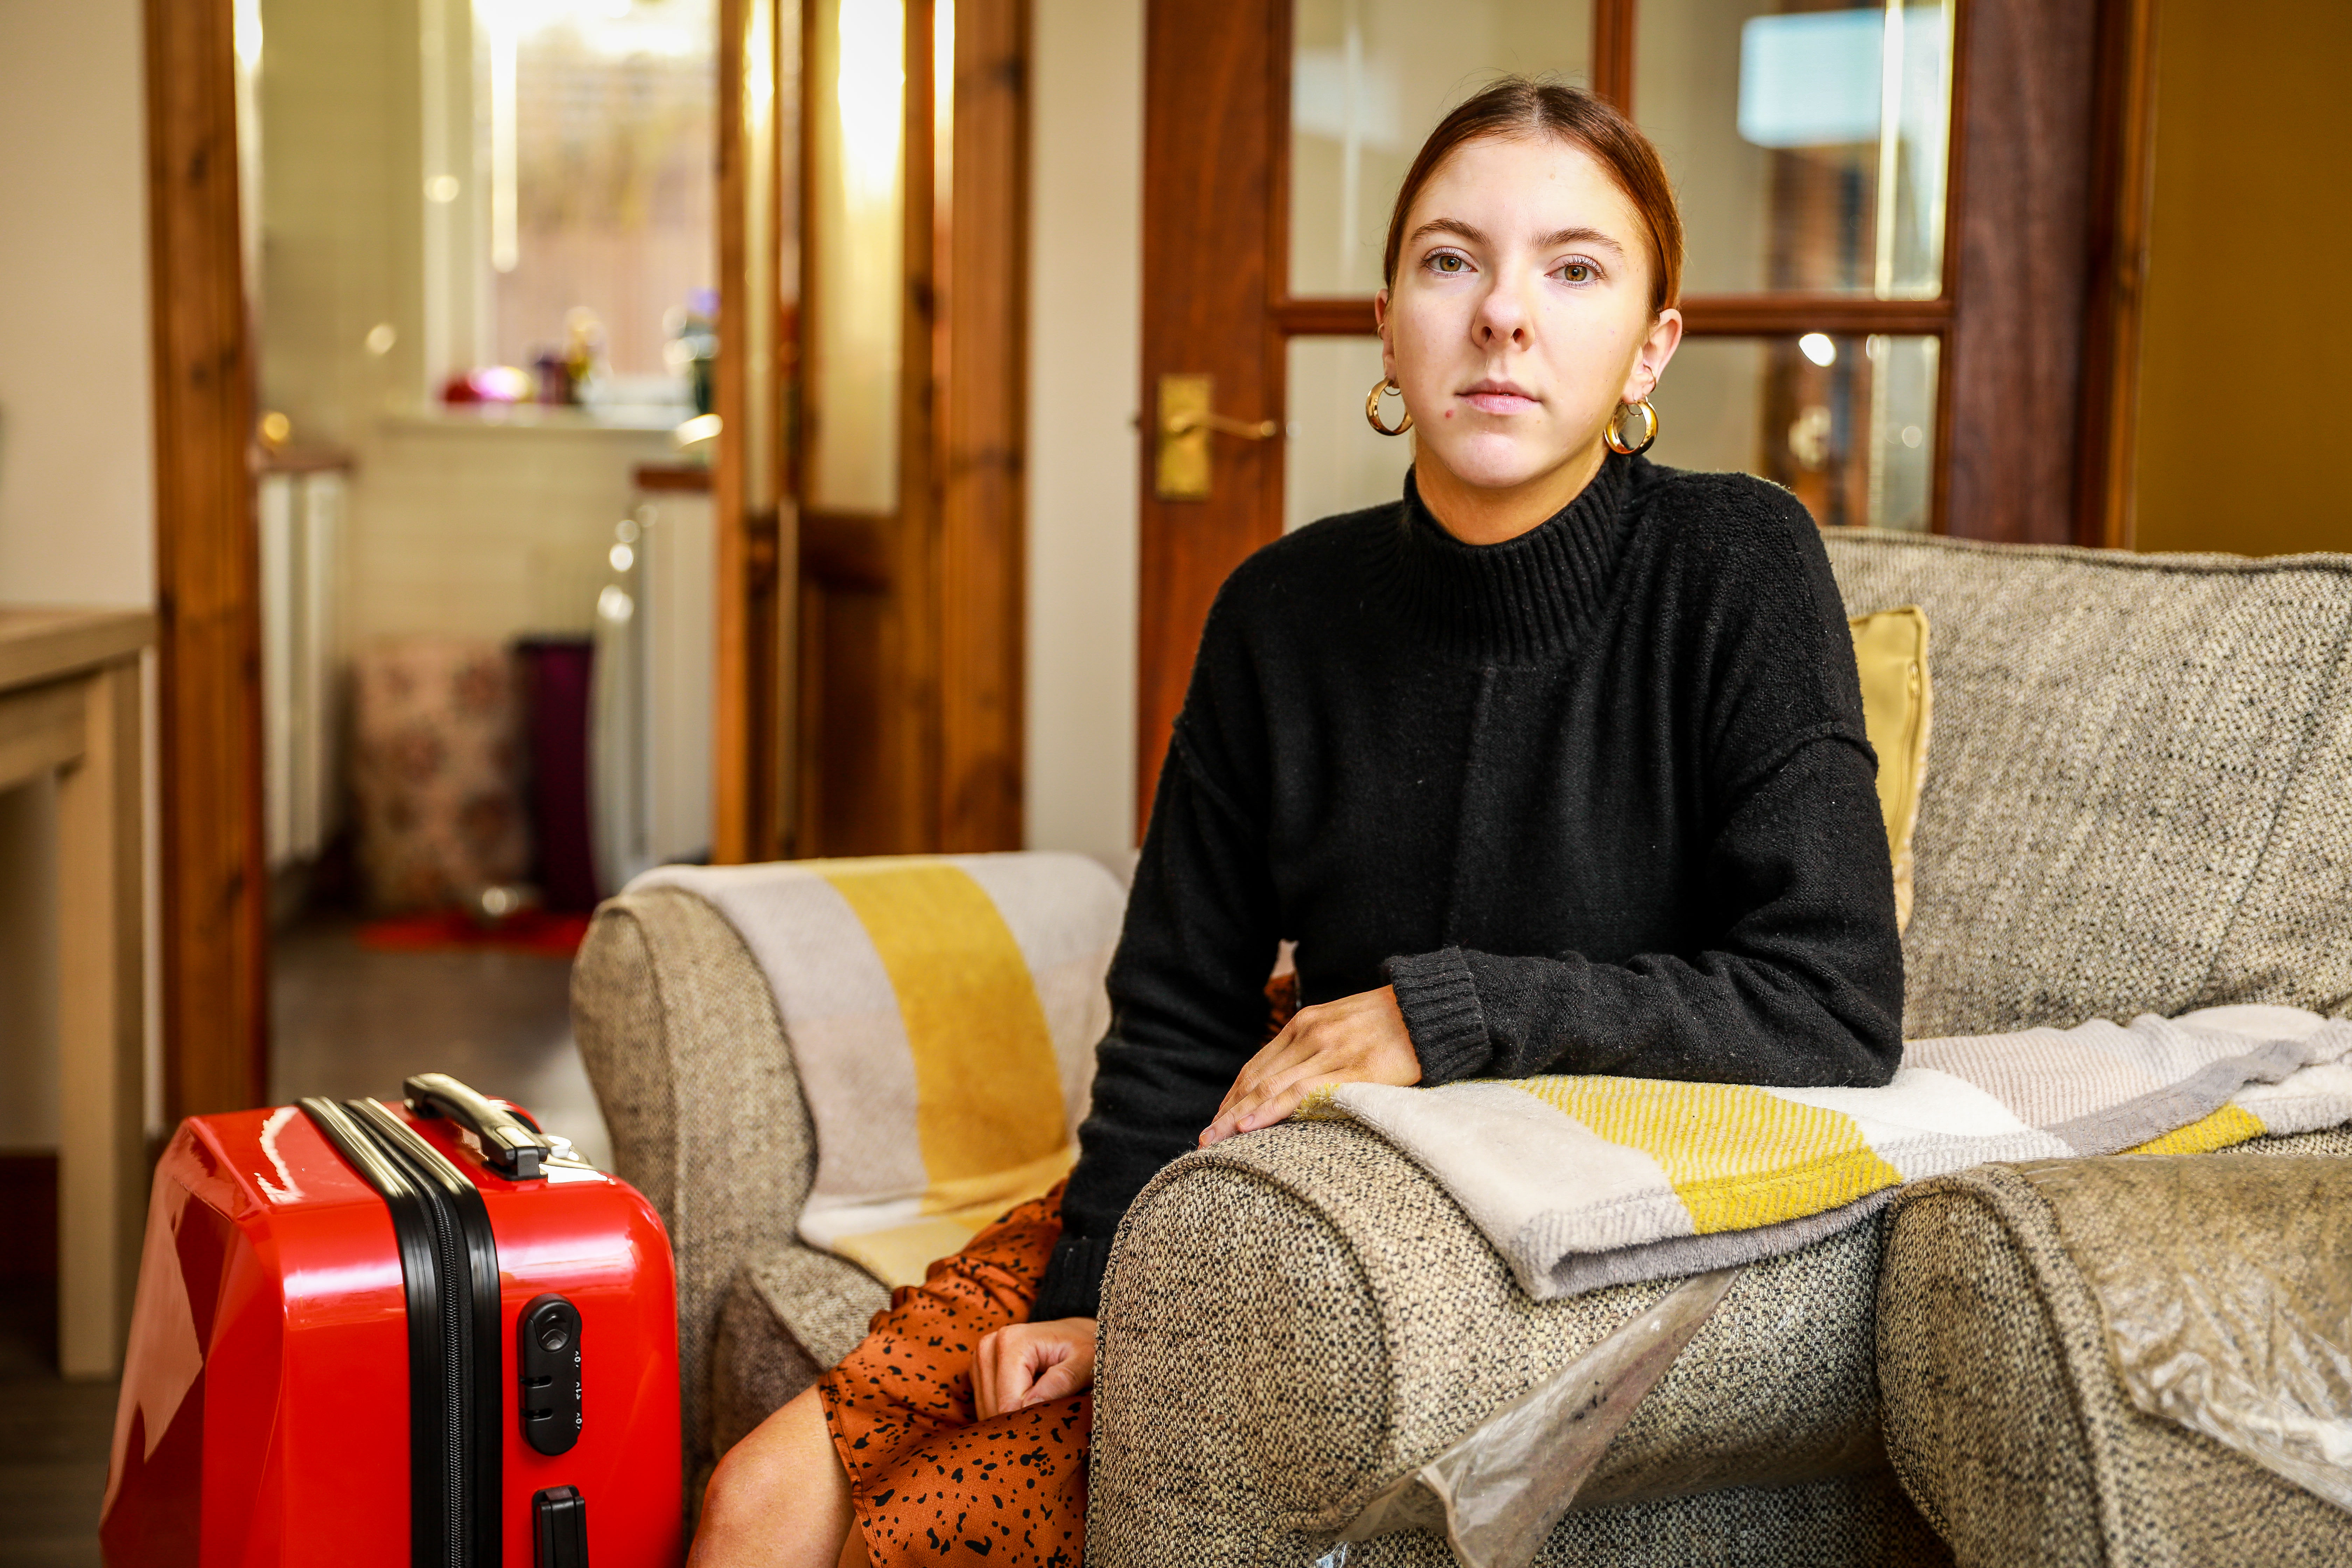 Charlotte Doig at home in Dundee with a case similar to the one that she lost.